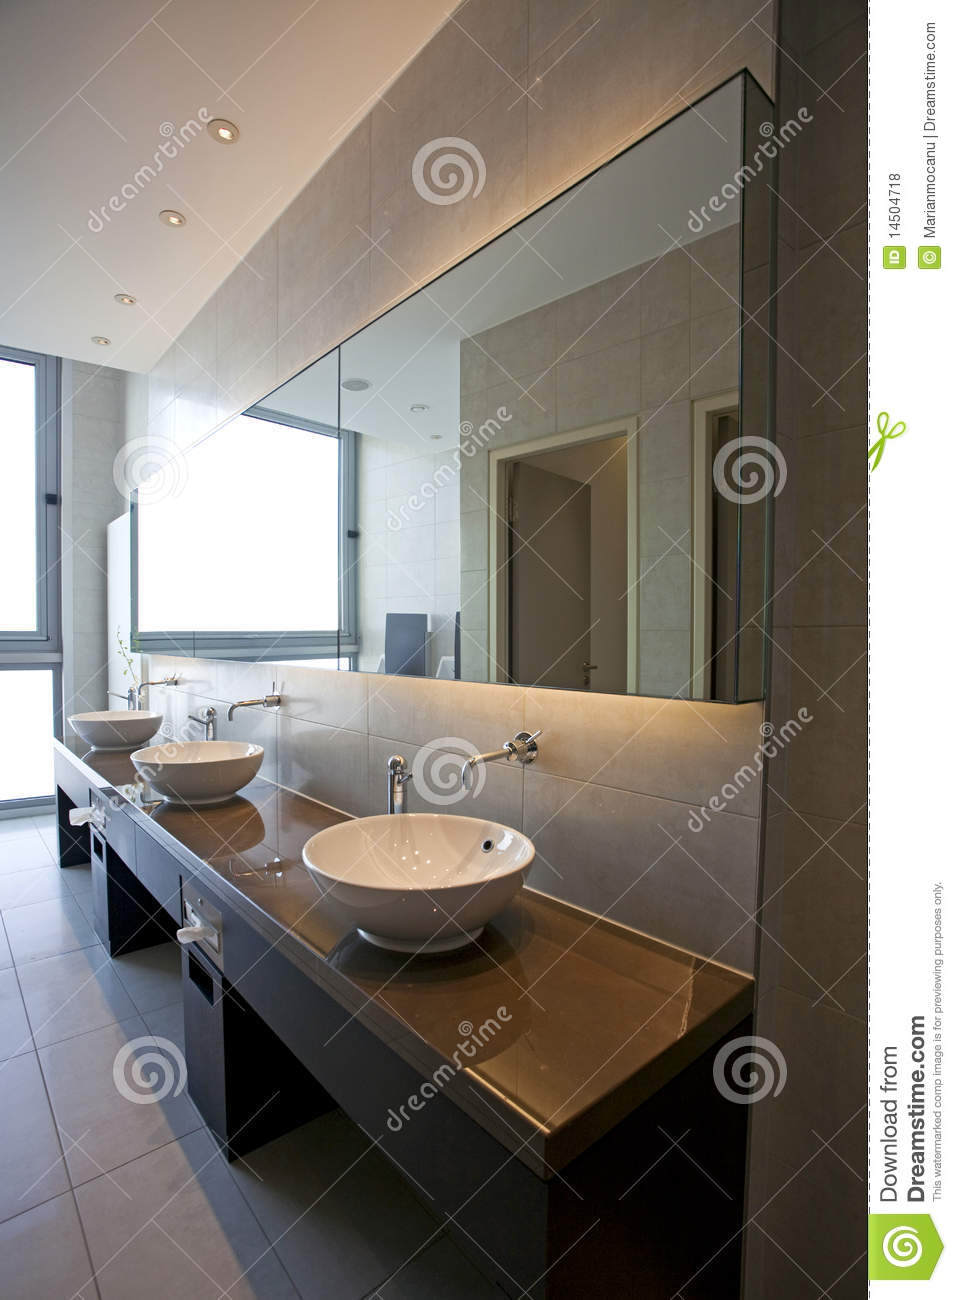 Bathroom Sink Royalty Free Stock Photos Image 14504718